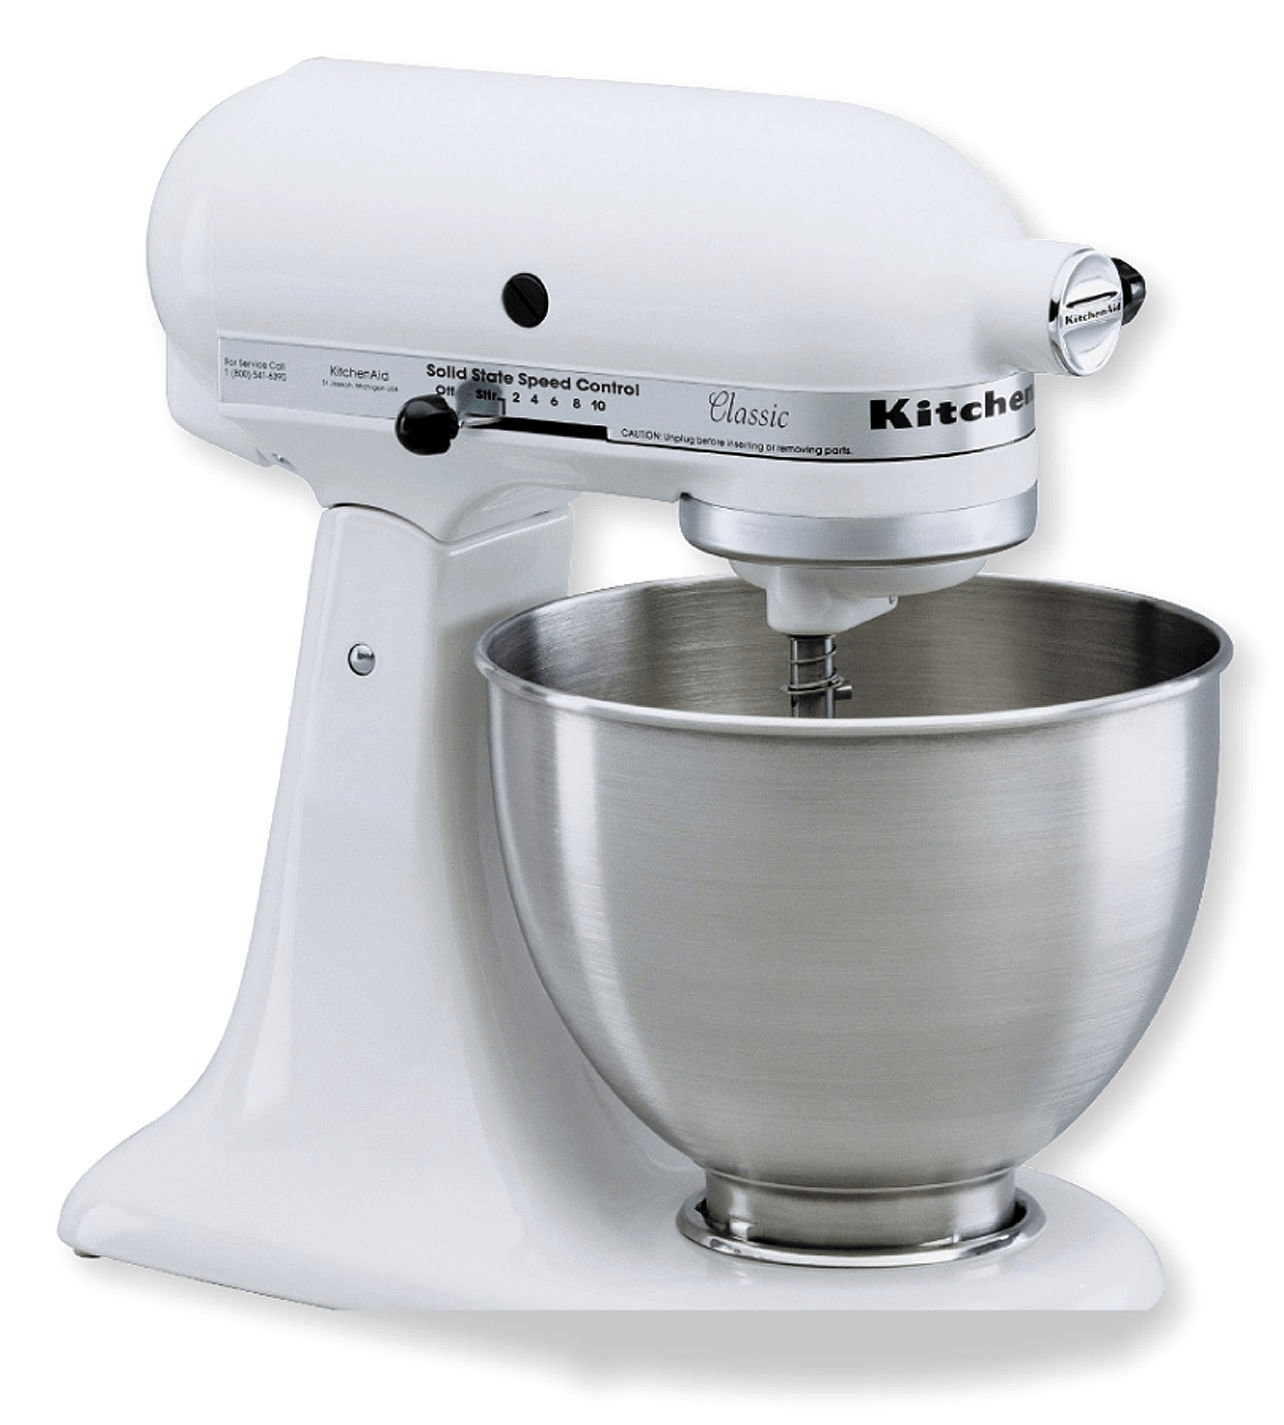 Kitchenaid mixer classic plus